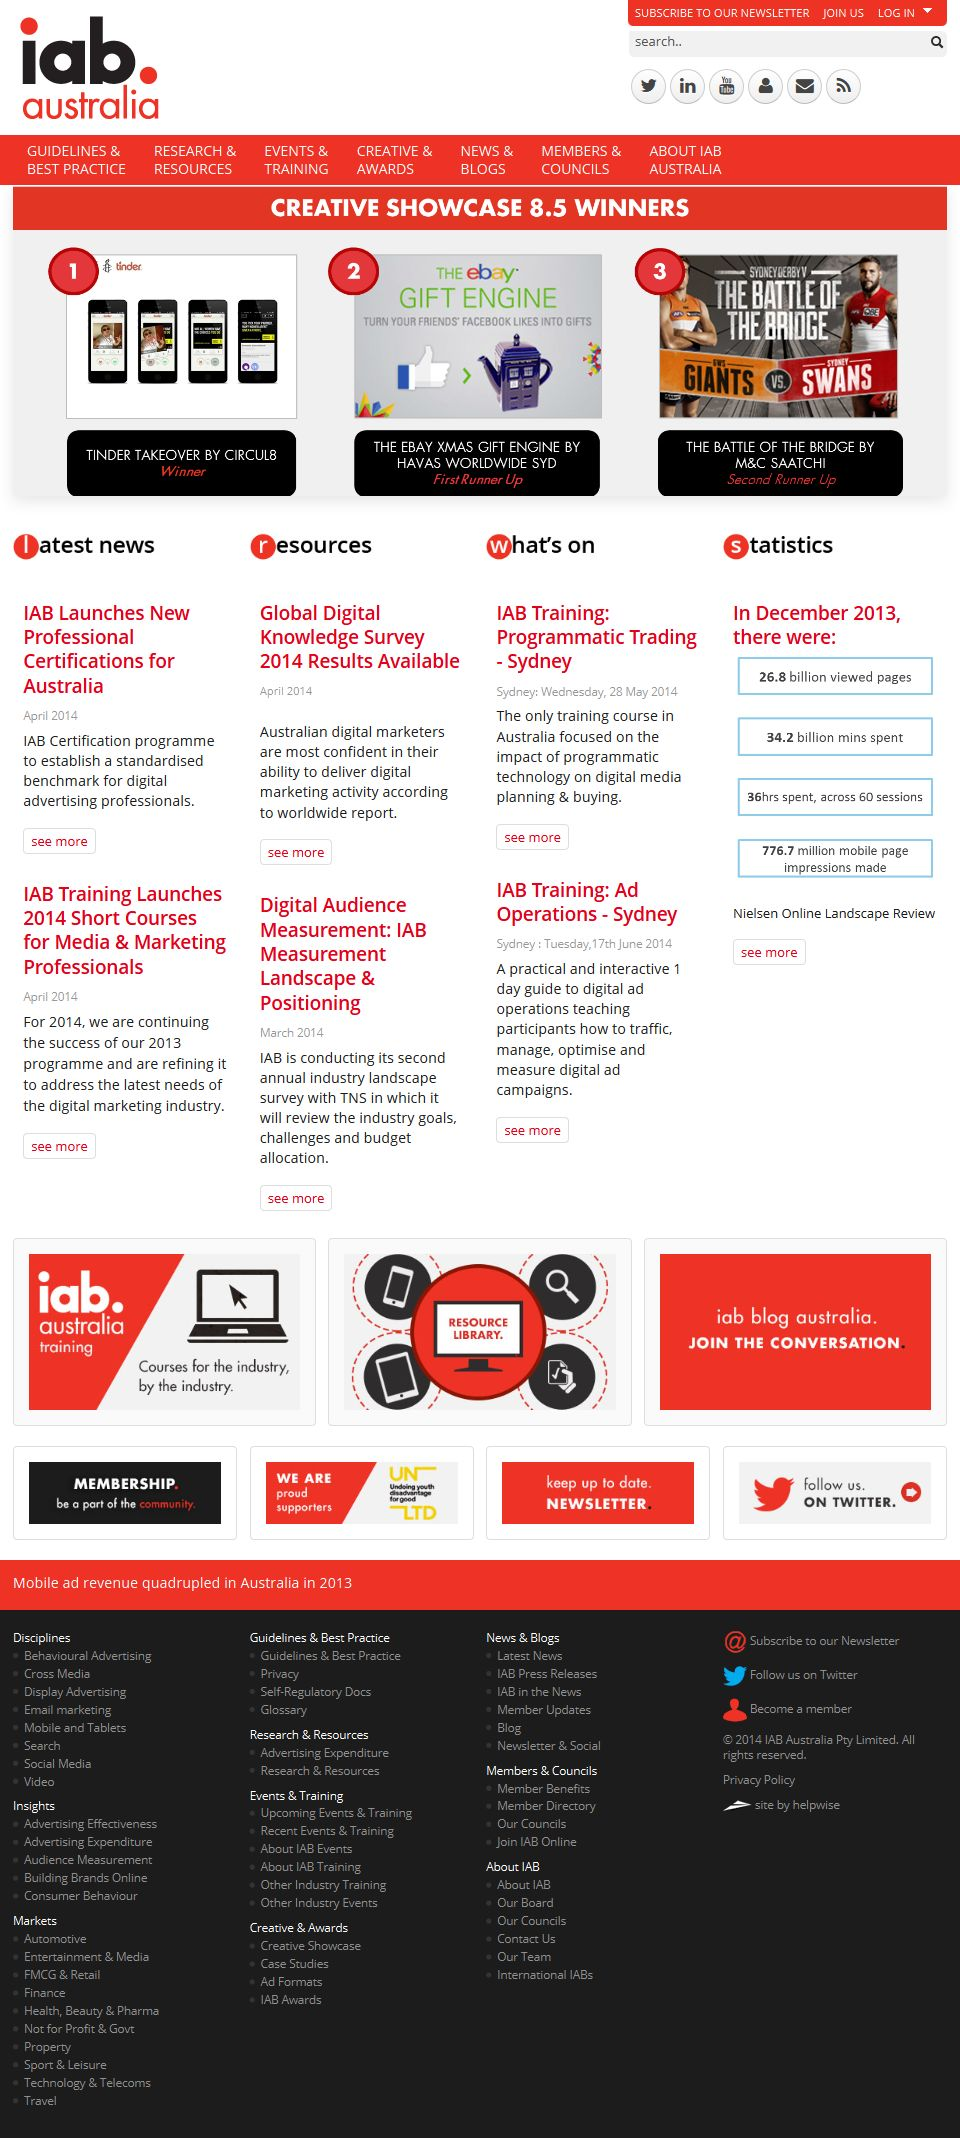 The interactive advertising bureau iab helpwise - Iab internet advertising bureau ...